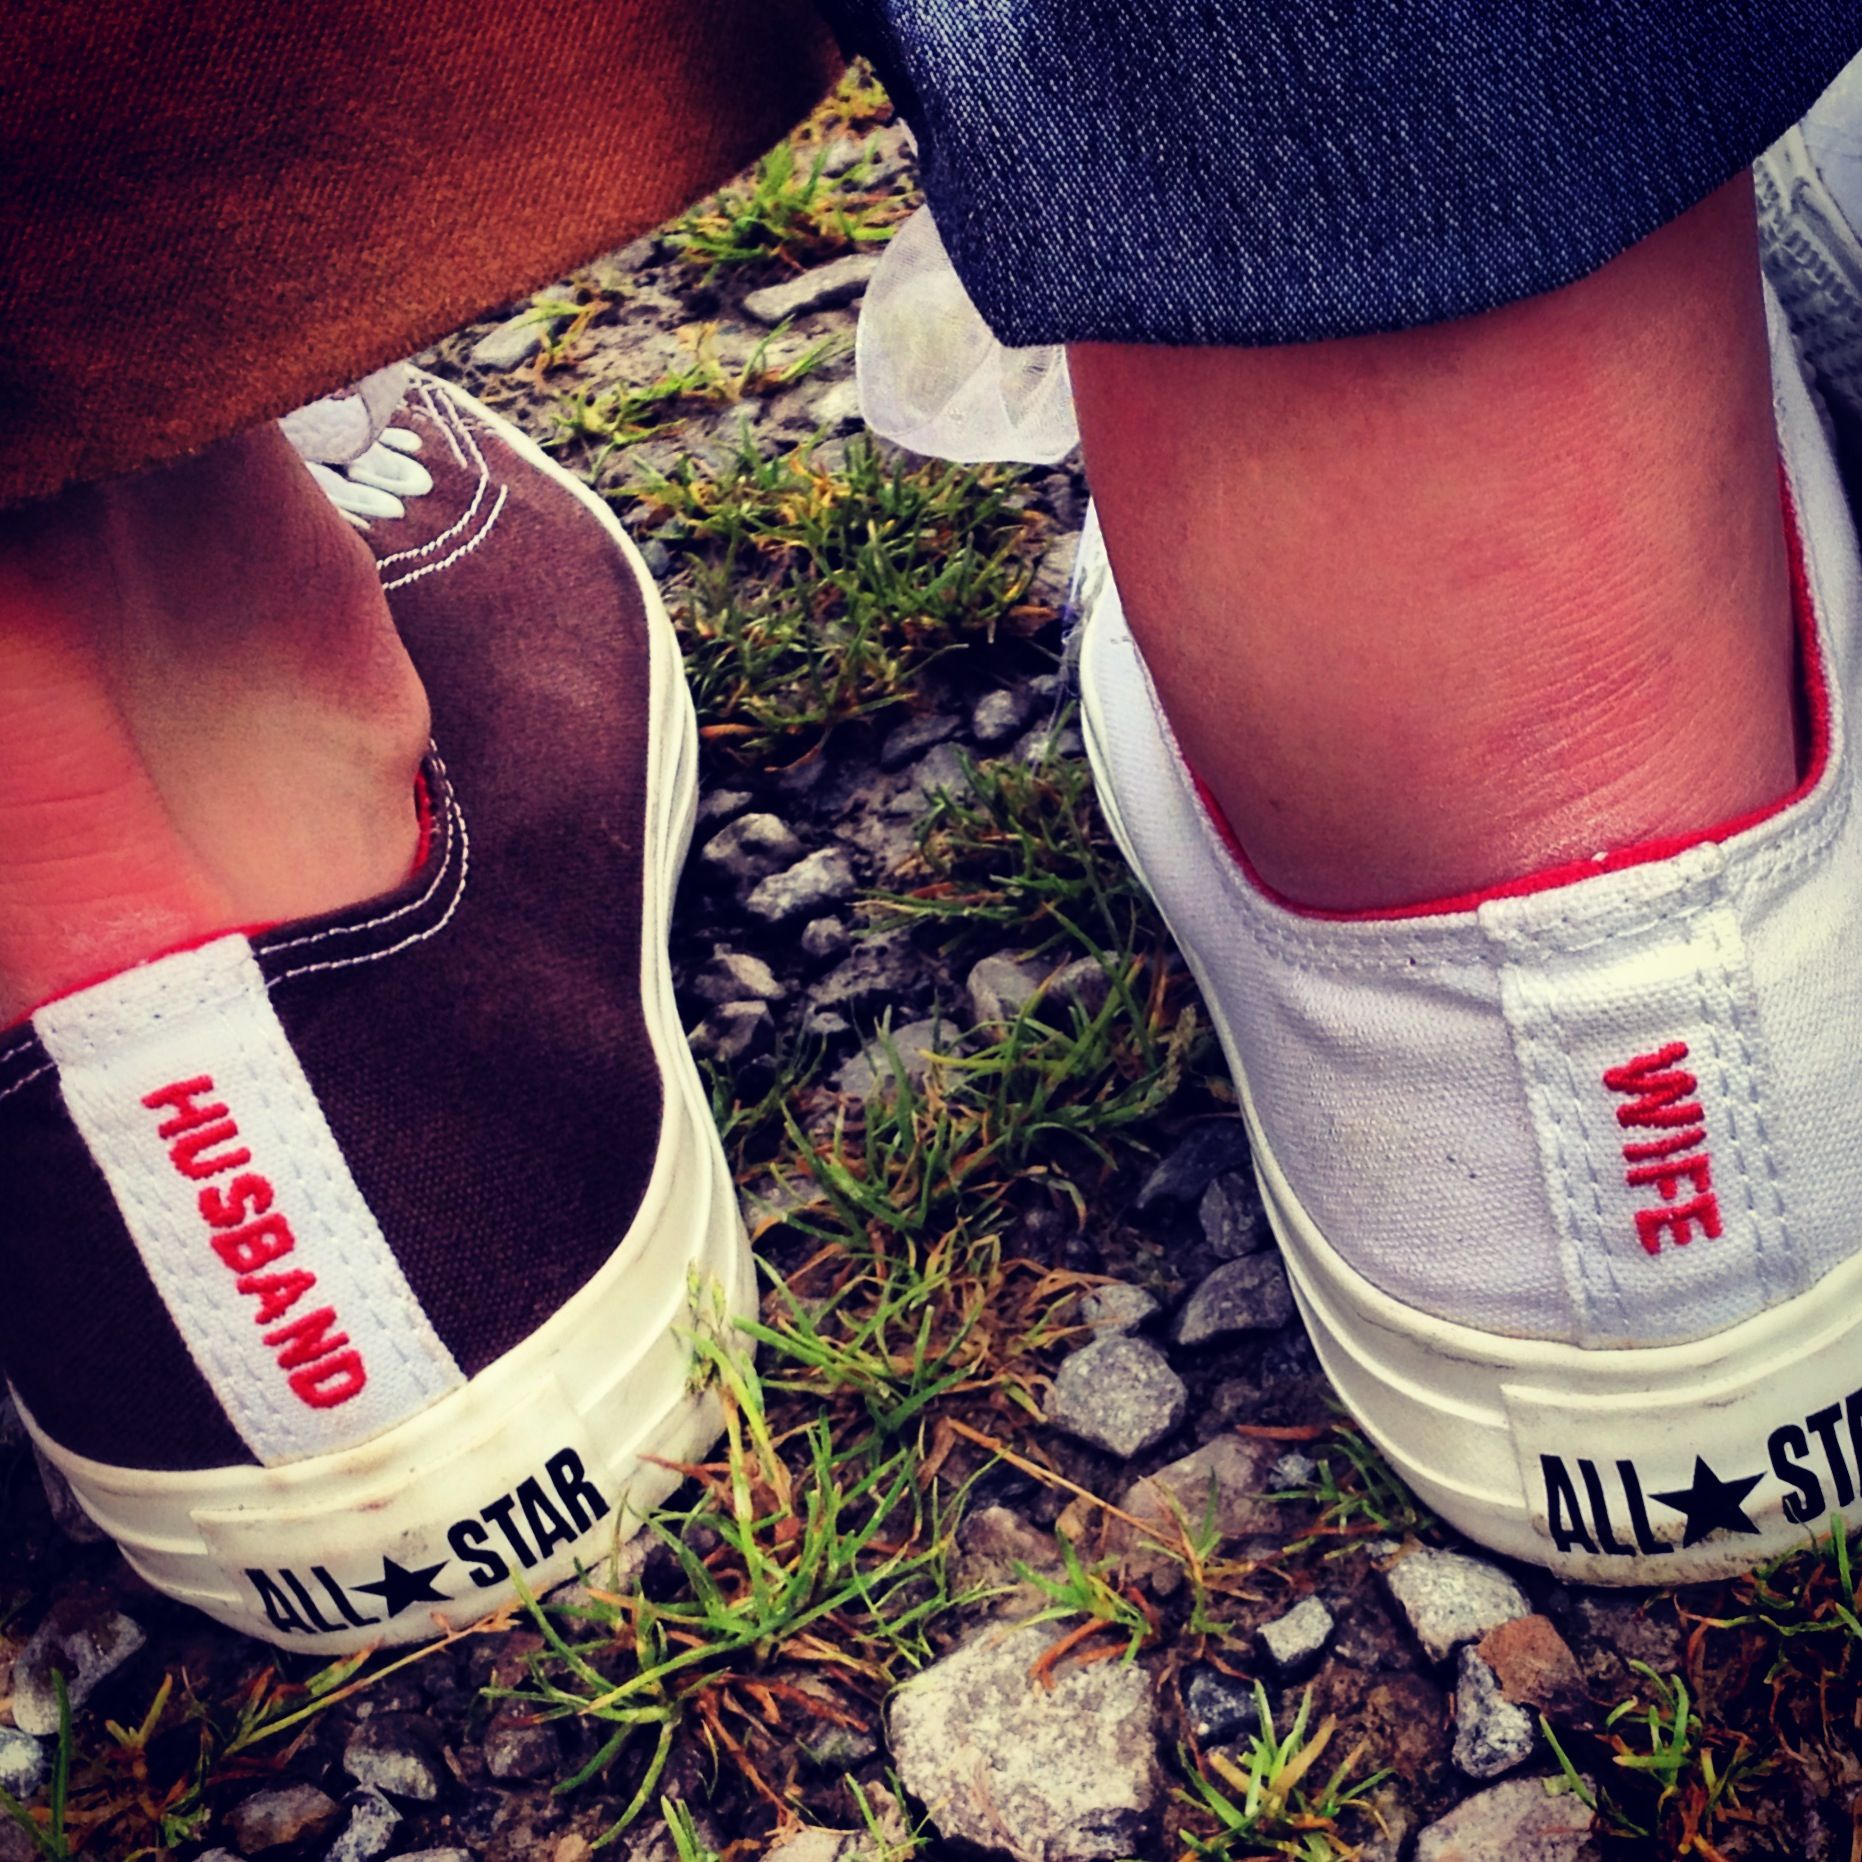 Amazing personalised wedding converse from converse.com maybe with air Jordan's instead